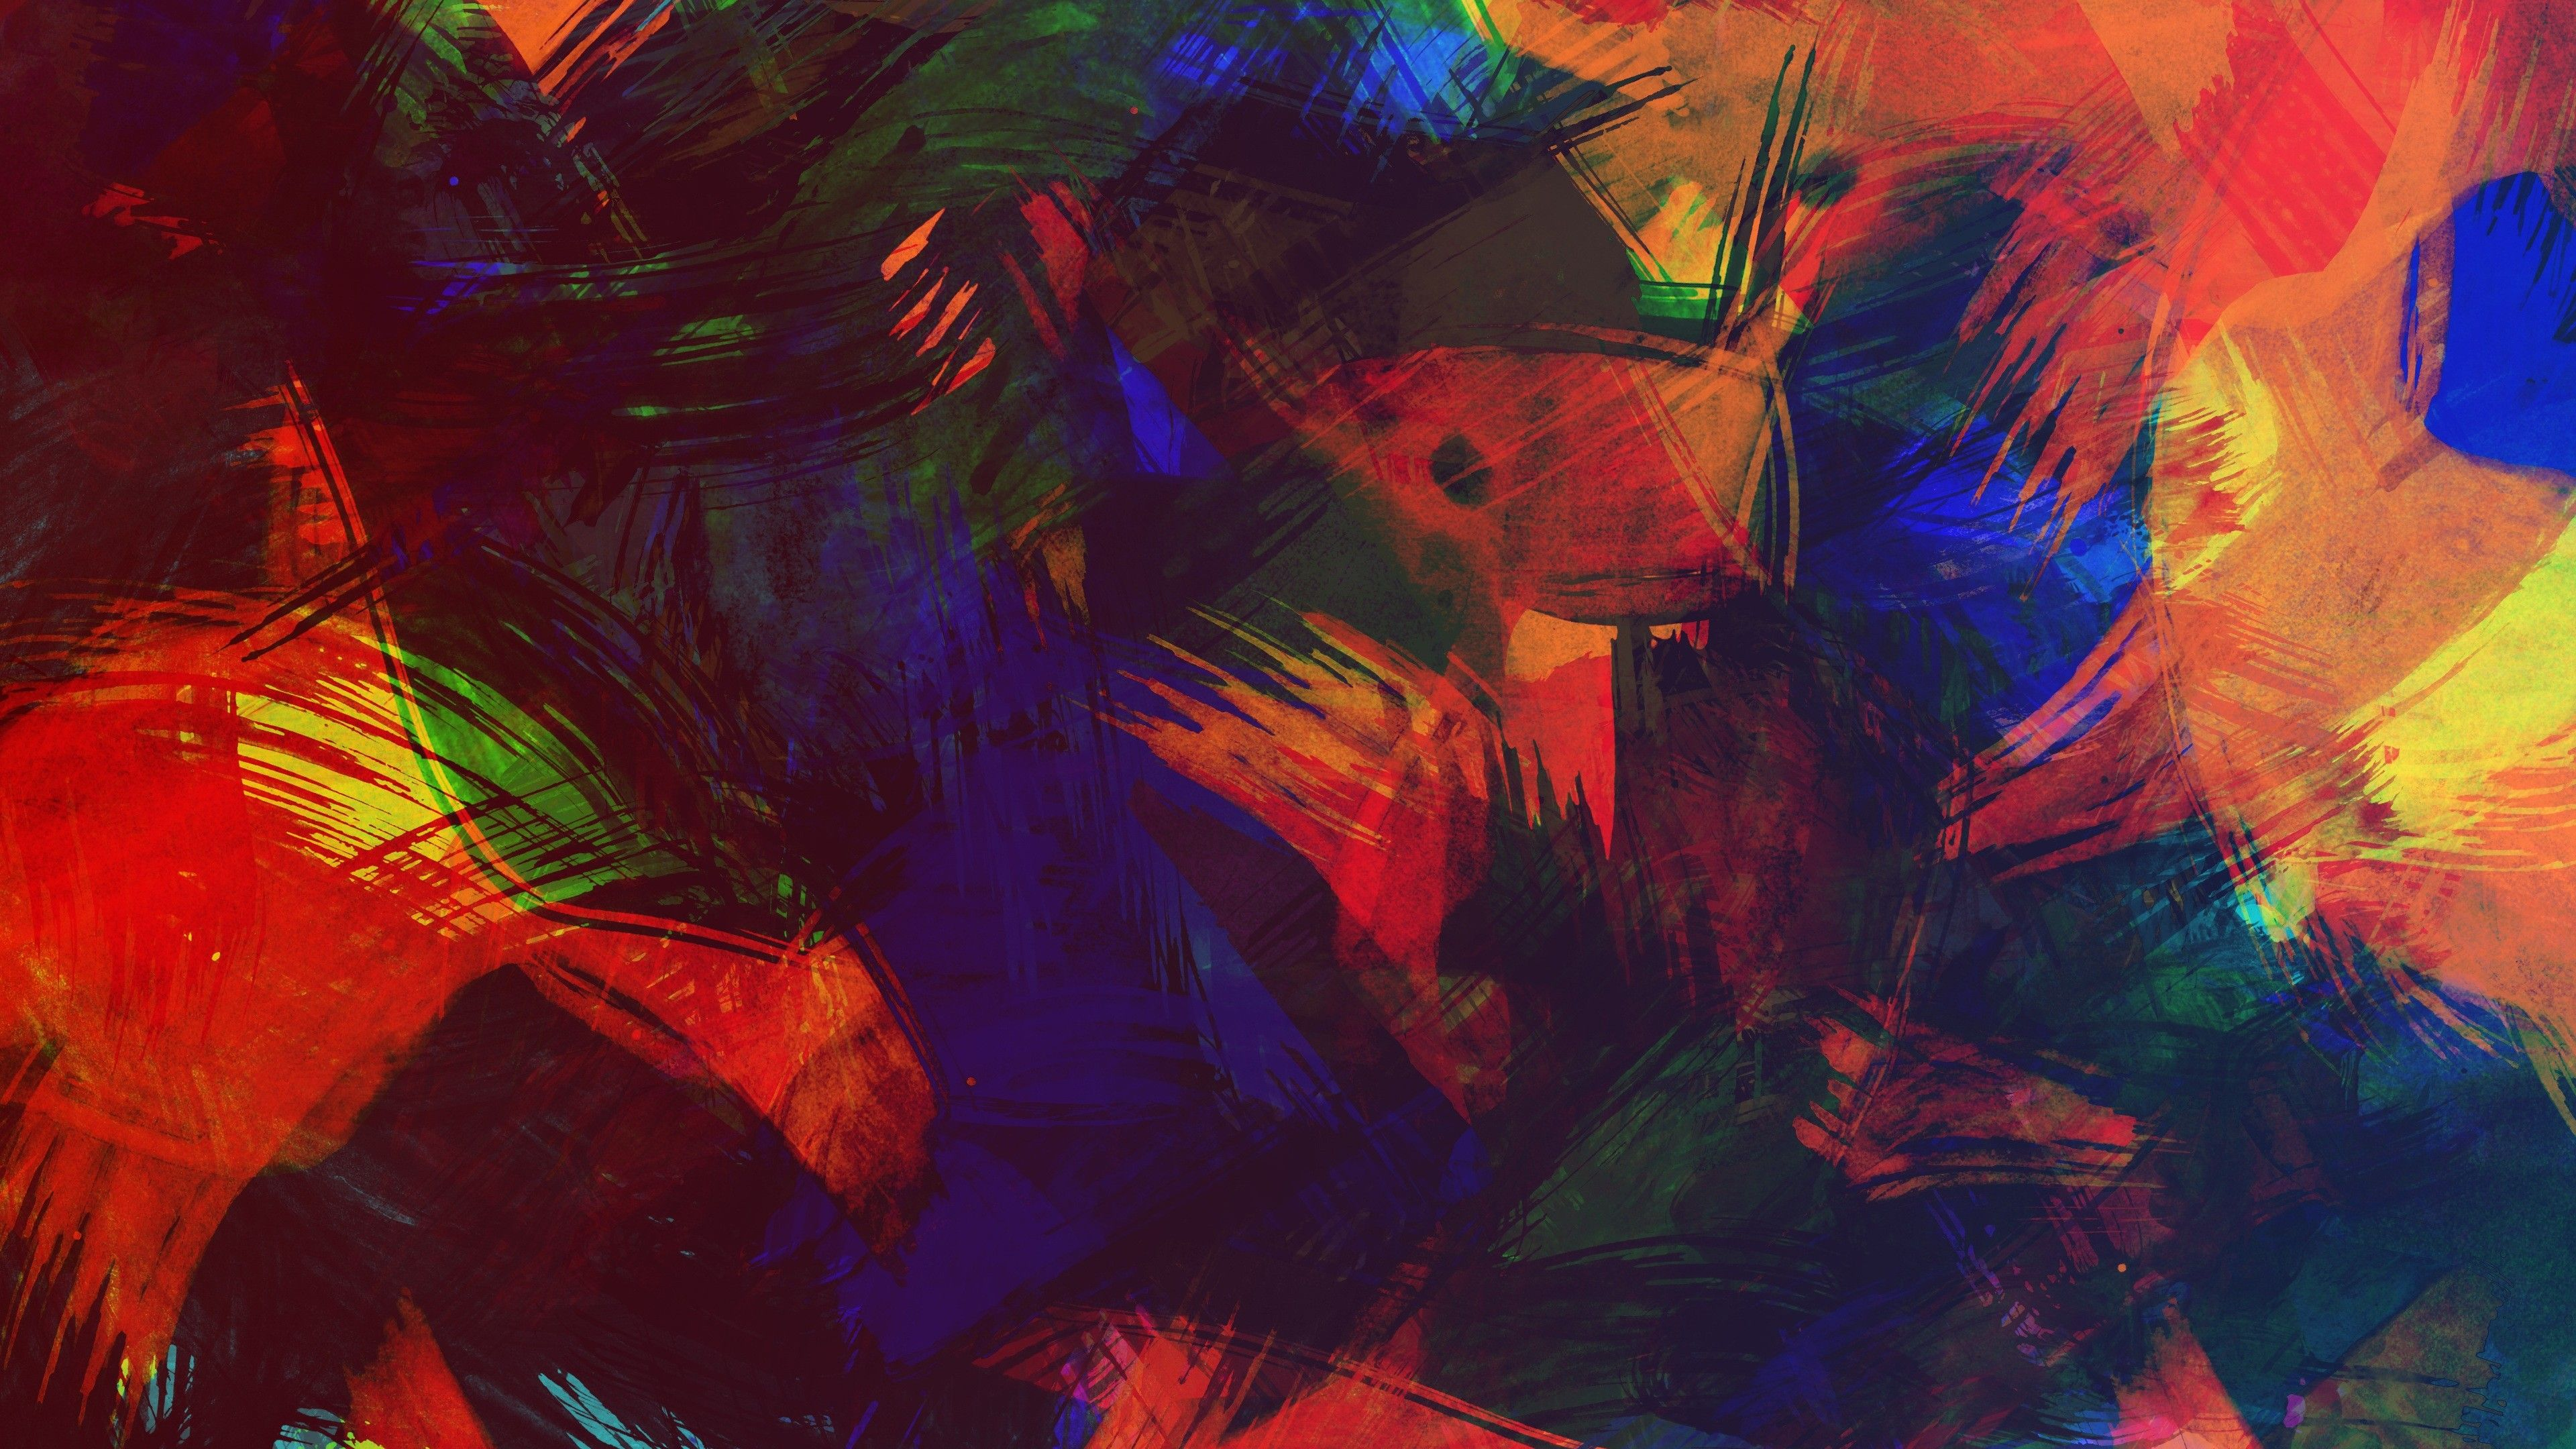 Picture Abstract Art In Hd Painting Free: Abstract Desktop Wallpapers